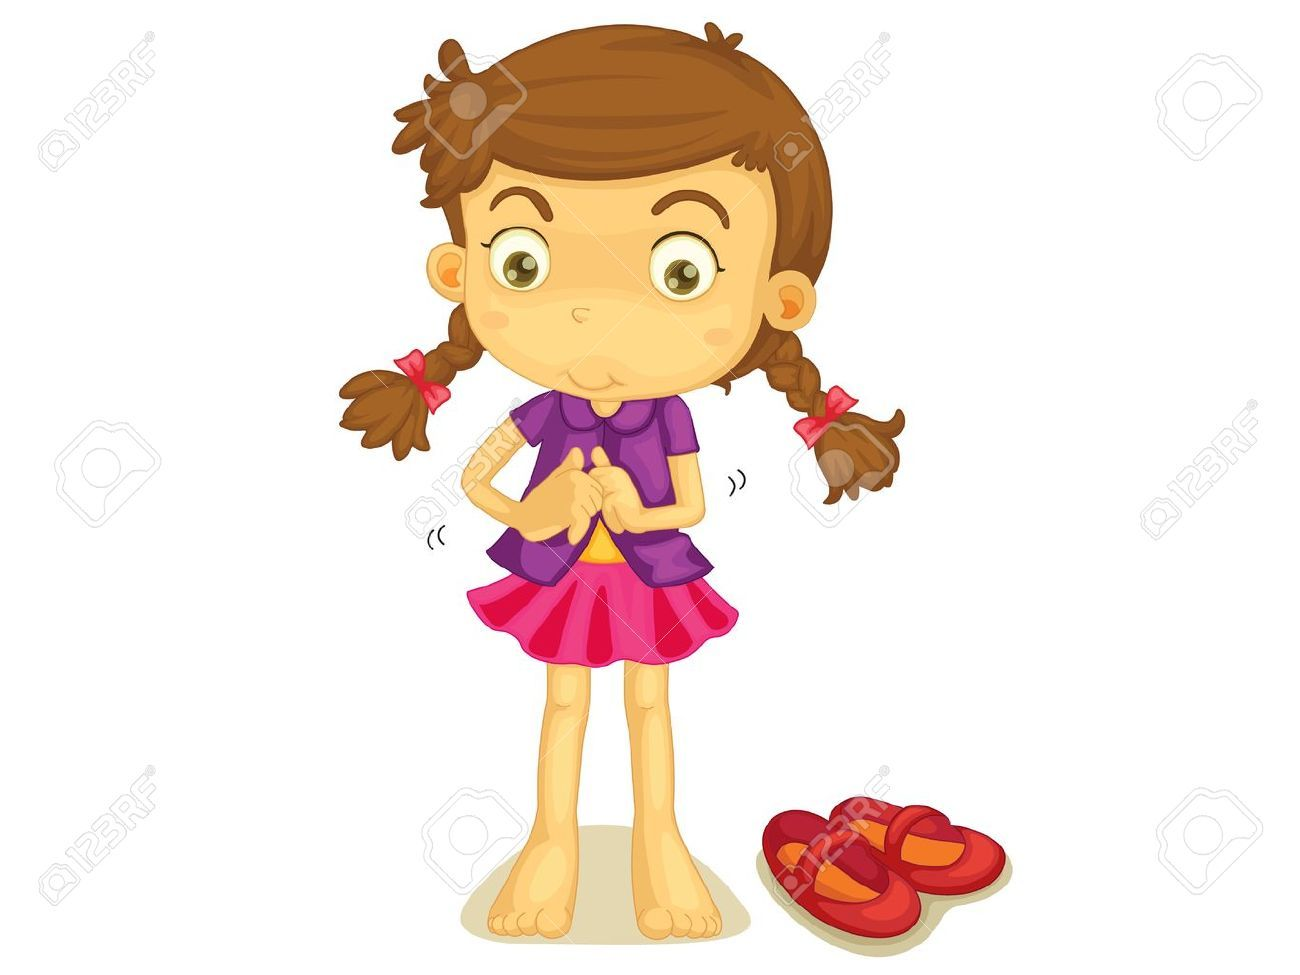 Girl getting dressed in the morning clipart » Clipart Portal.